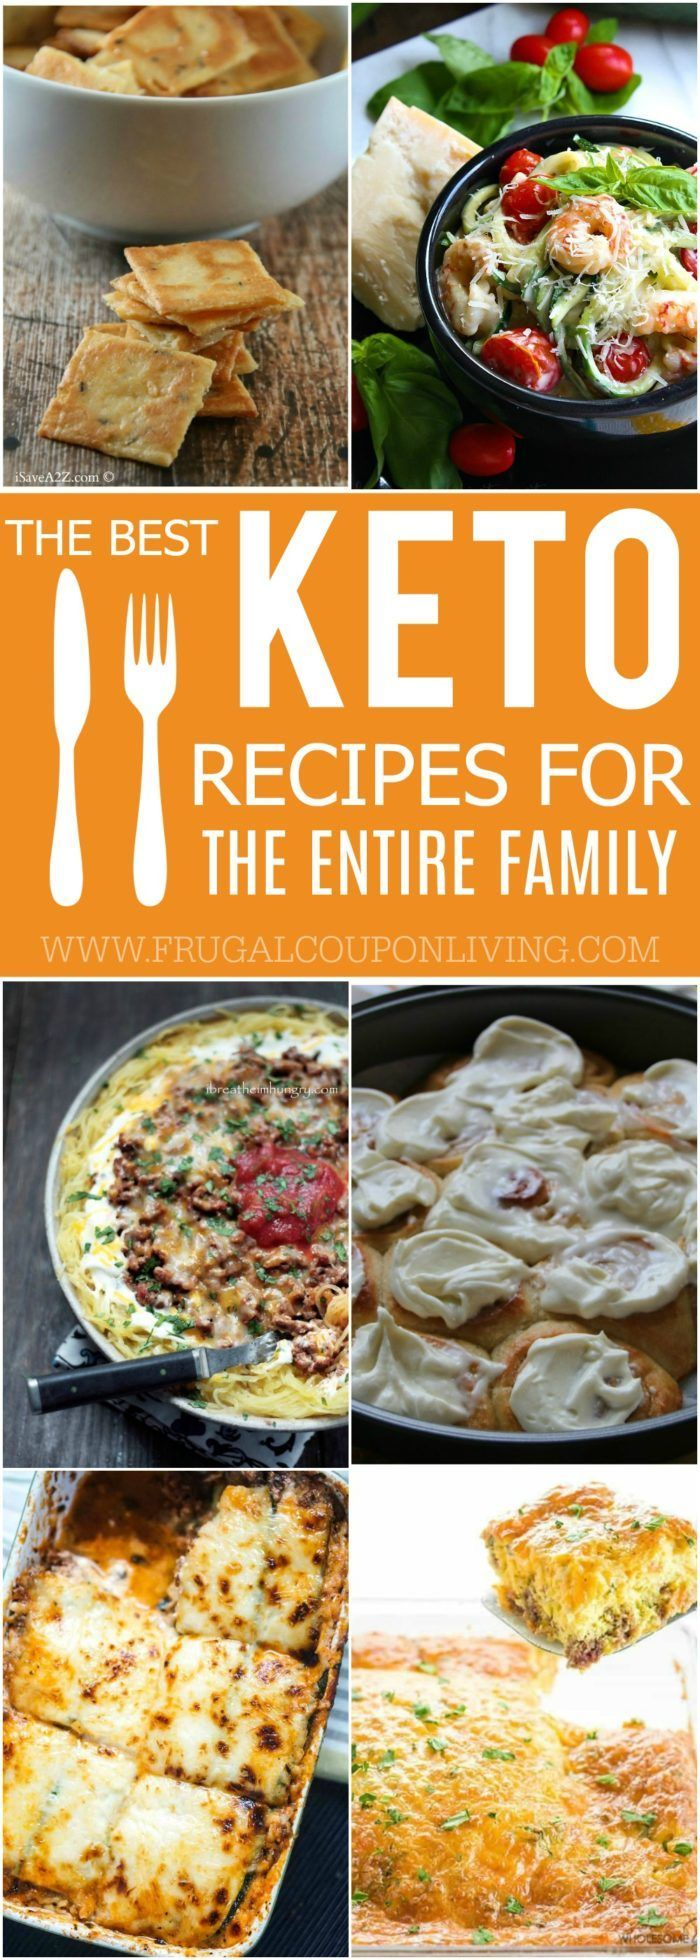 Keto Recipes for the Entire Family. These mouthwatering, low carb recipes are so...